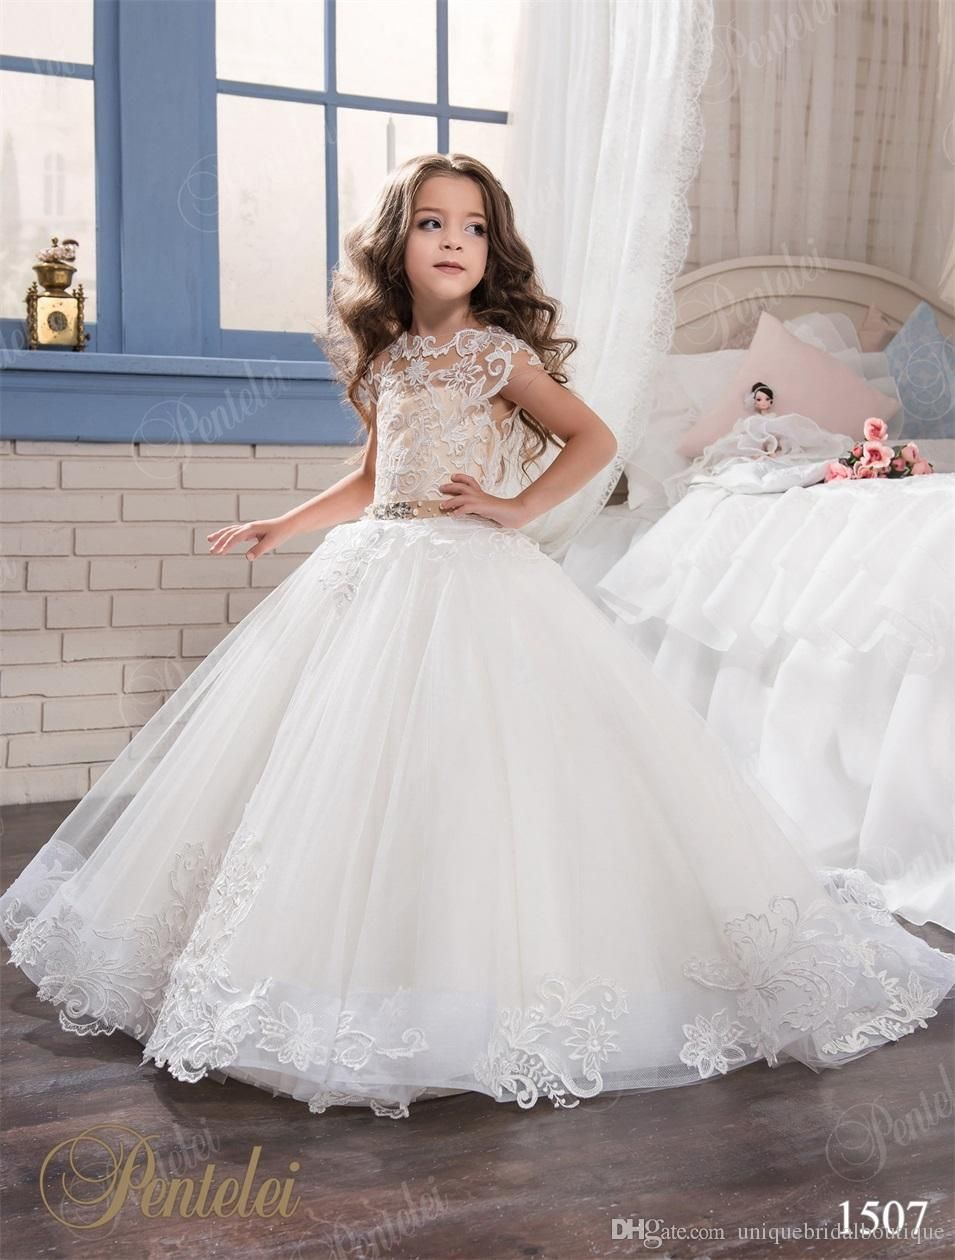 Kids wedding dresses 2017 pentelei with cap sleeves and for Flower girls wedding dresses